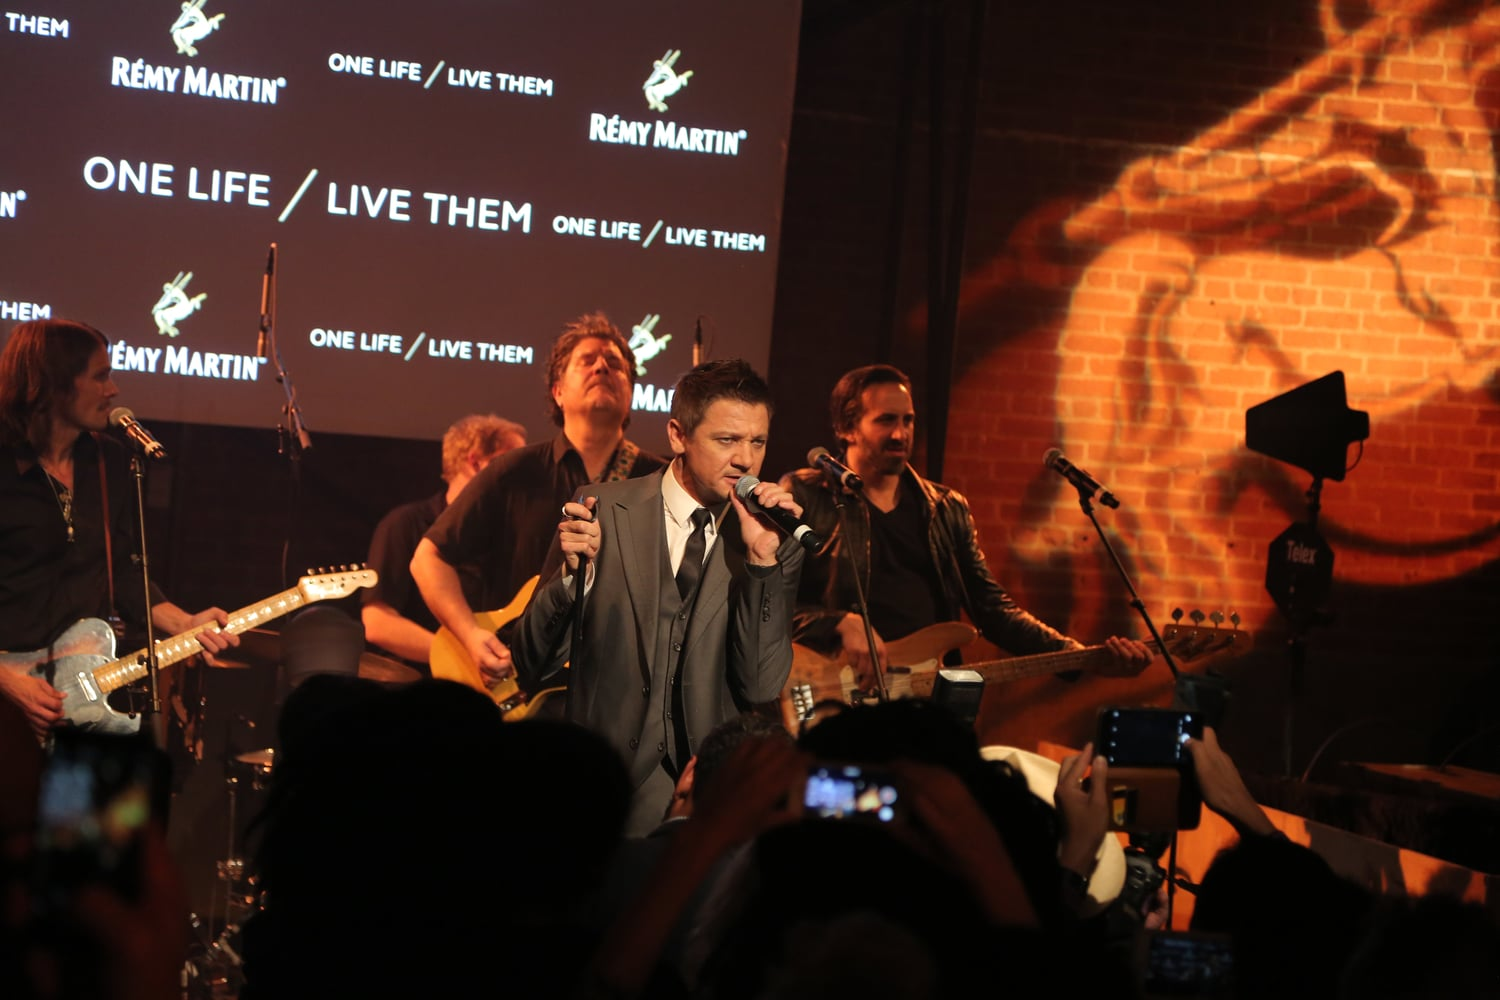 Jeremy+Renner+performs+at+Remy+Martin+One+Life-Live+Them+Campaign+Launch.jpeg